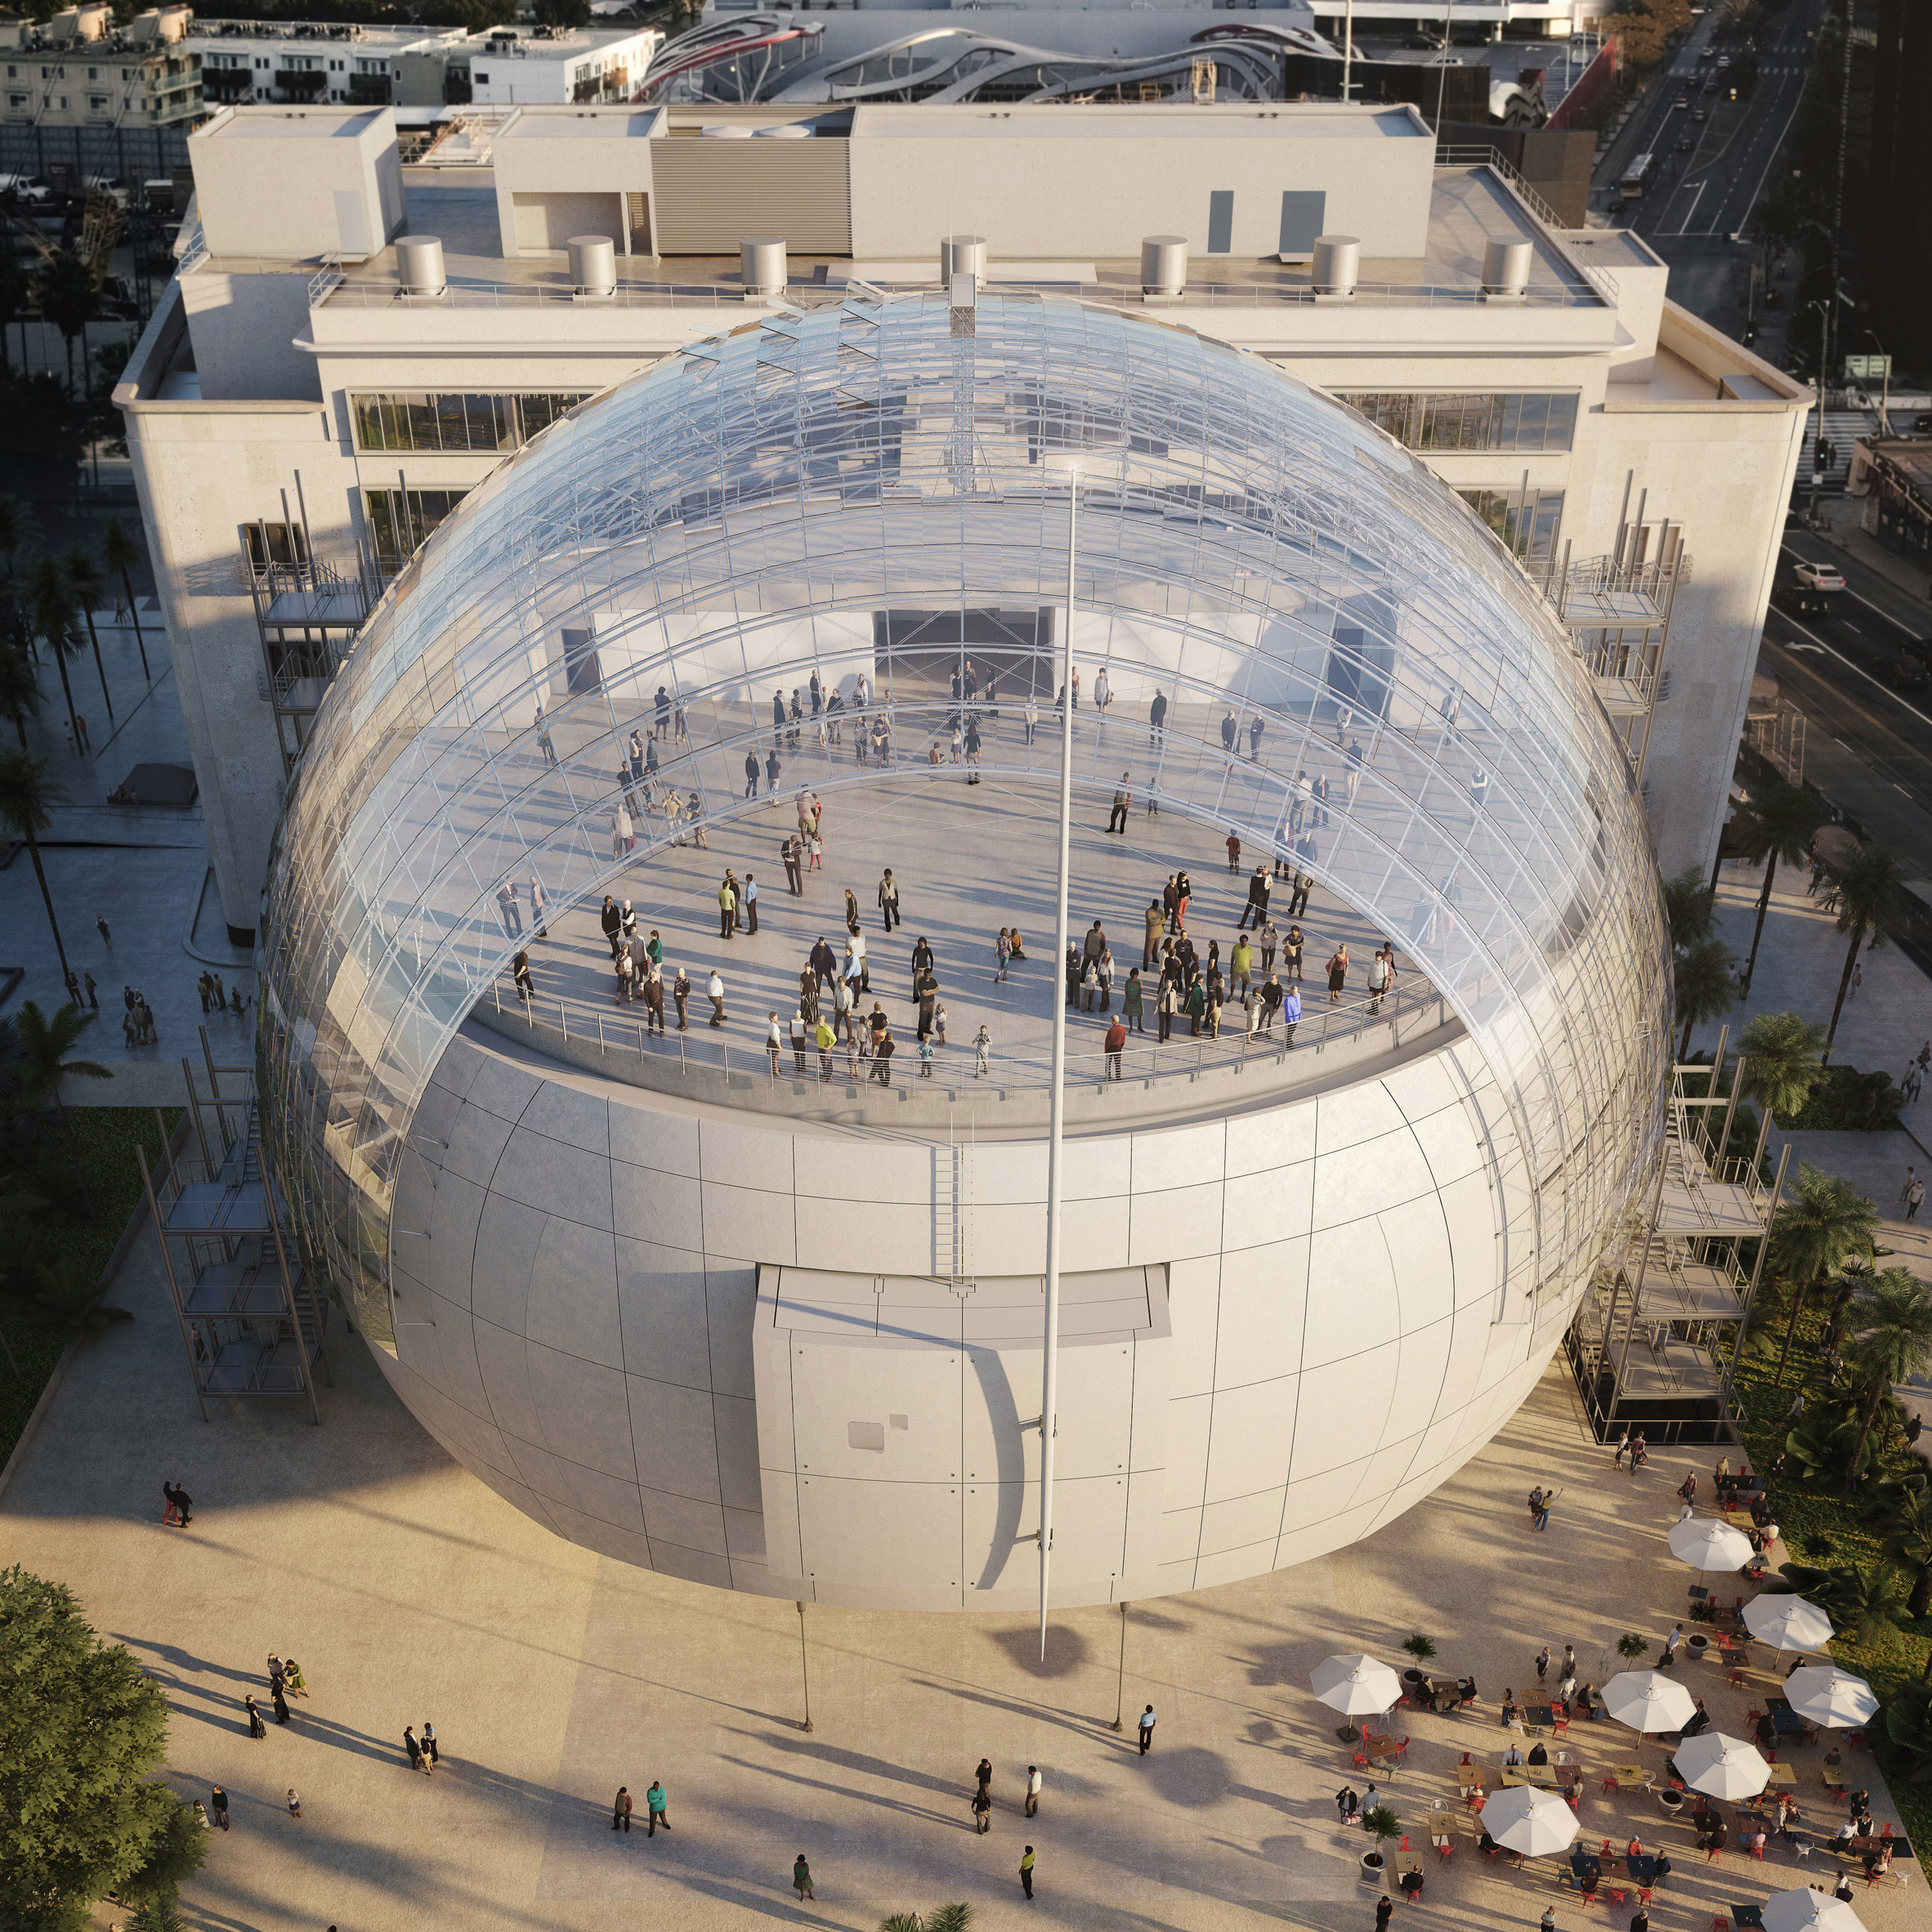 New images show Renzo Piano's Academy Museum of Motion Pictures in LA